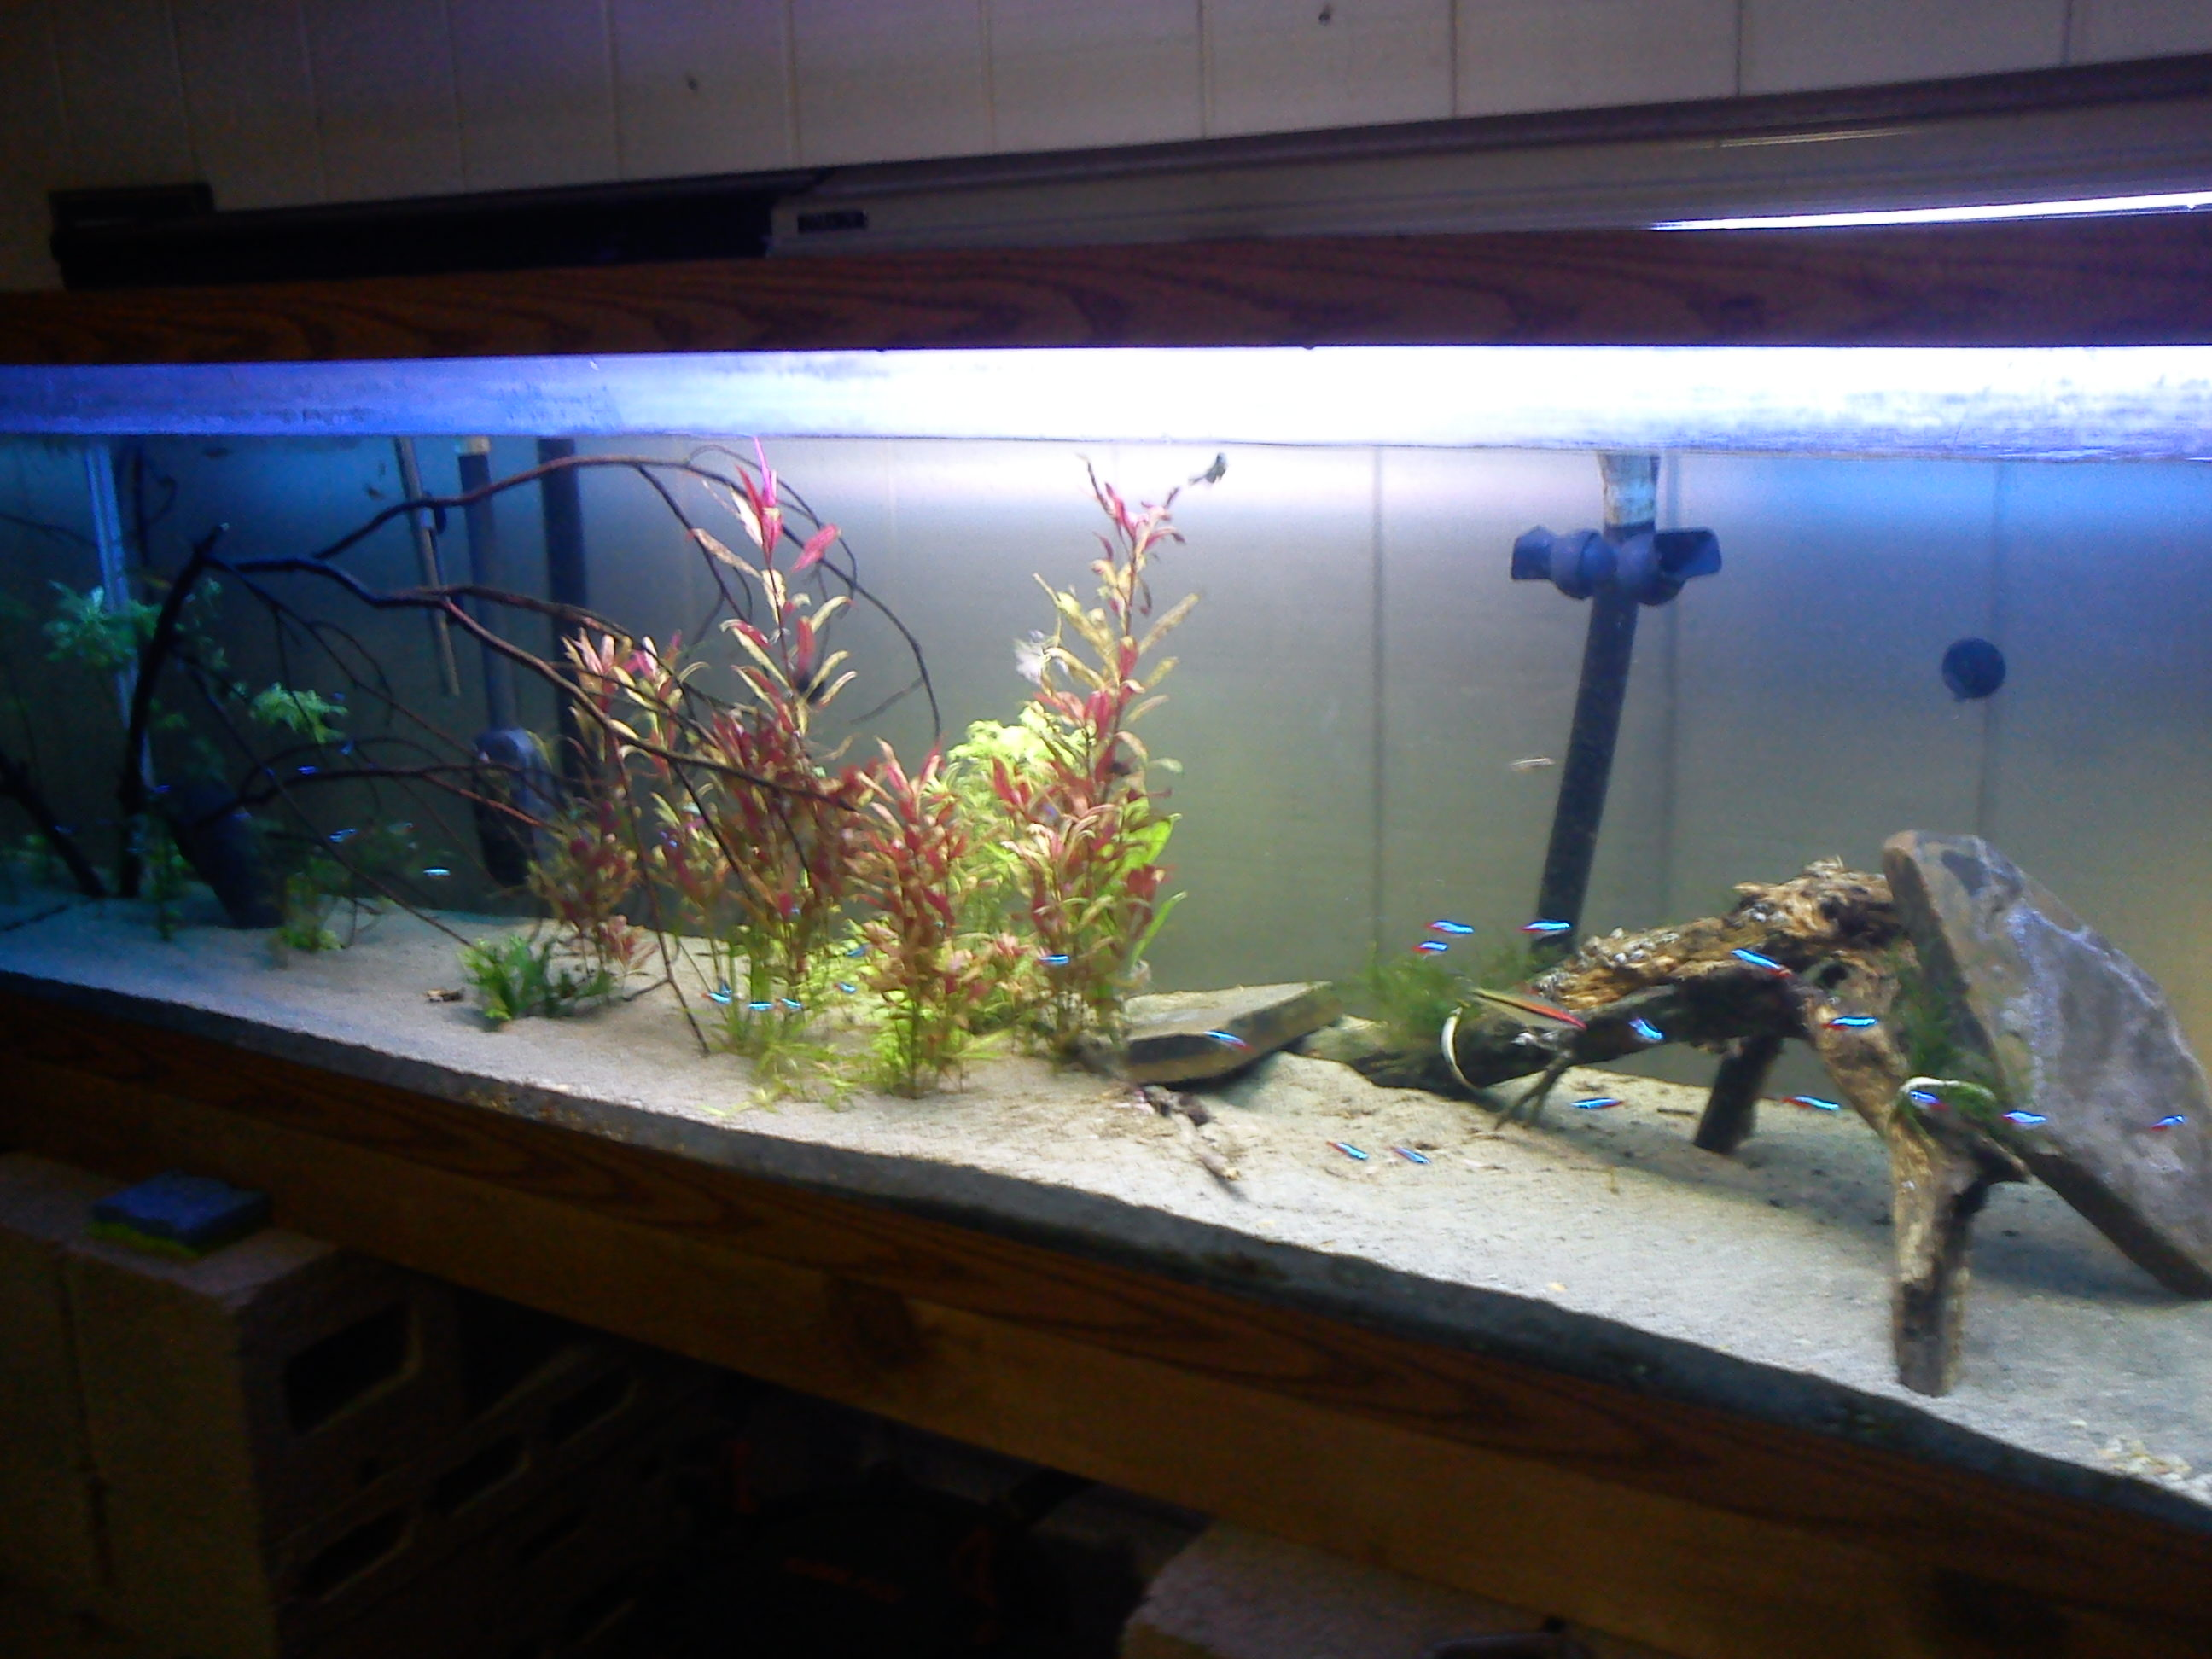 125 Gallon Aquarium : 125 Gallon Aquarium Related Keywords & Suggestions - 125 Gallon ...